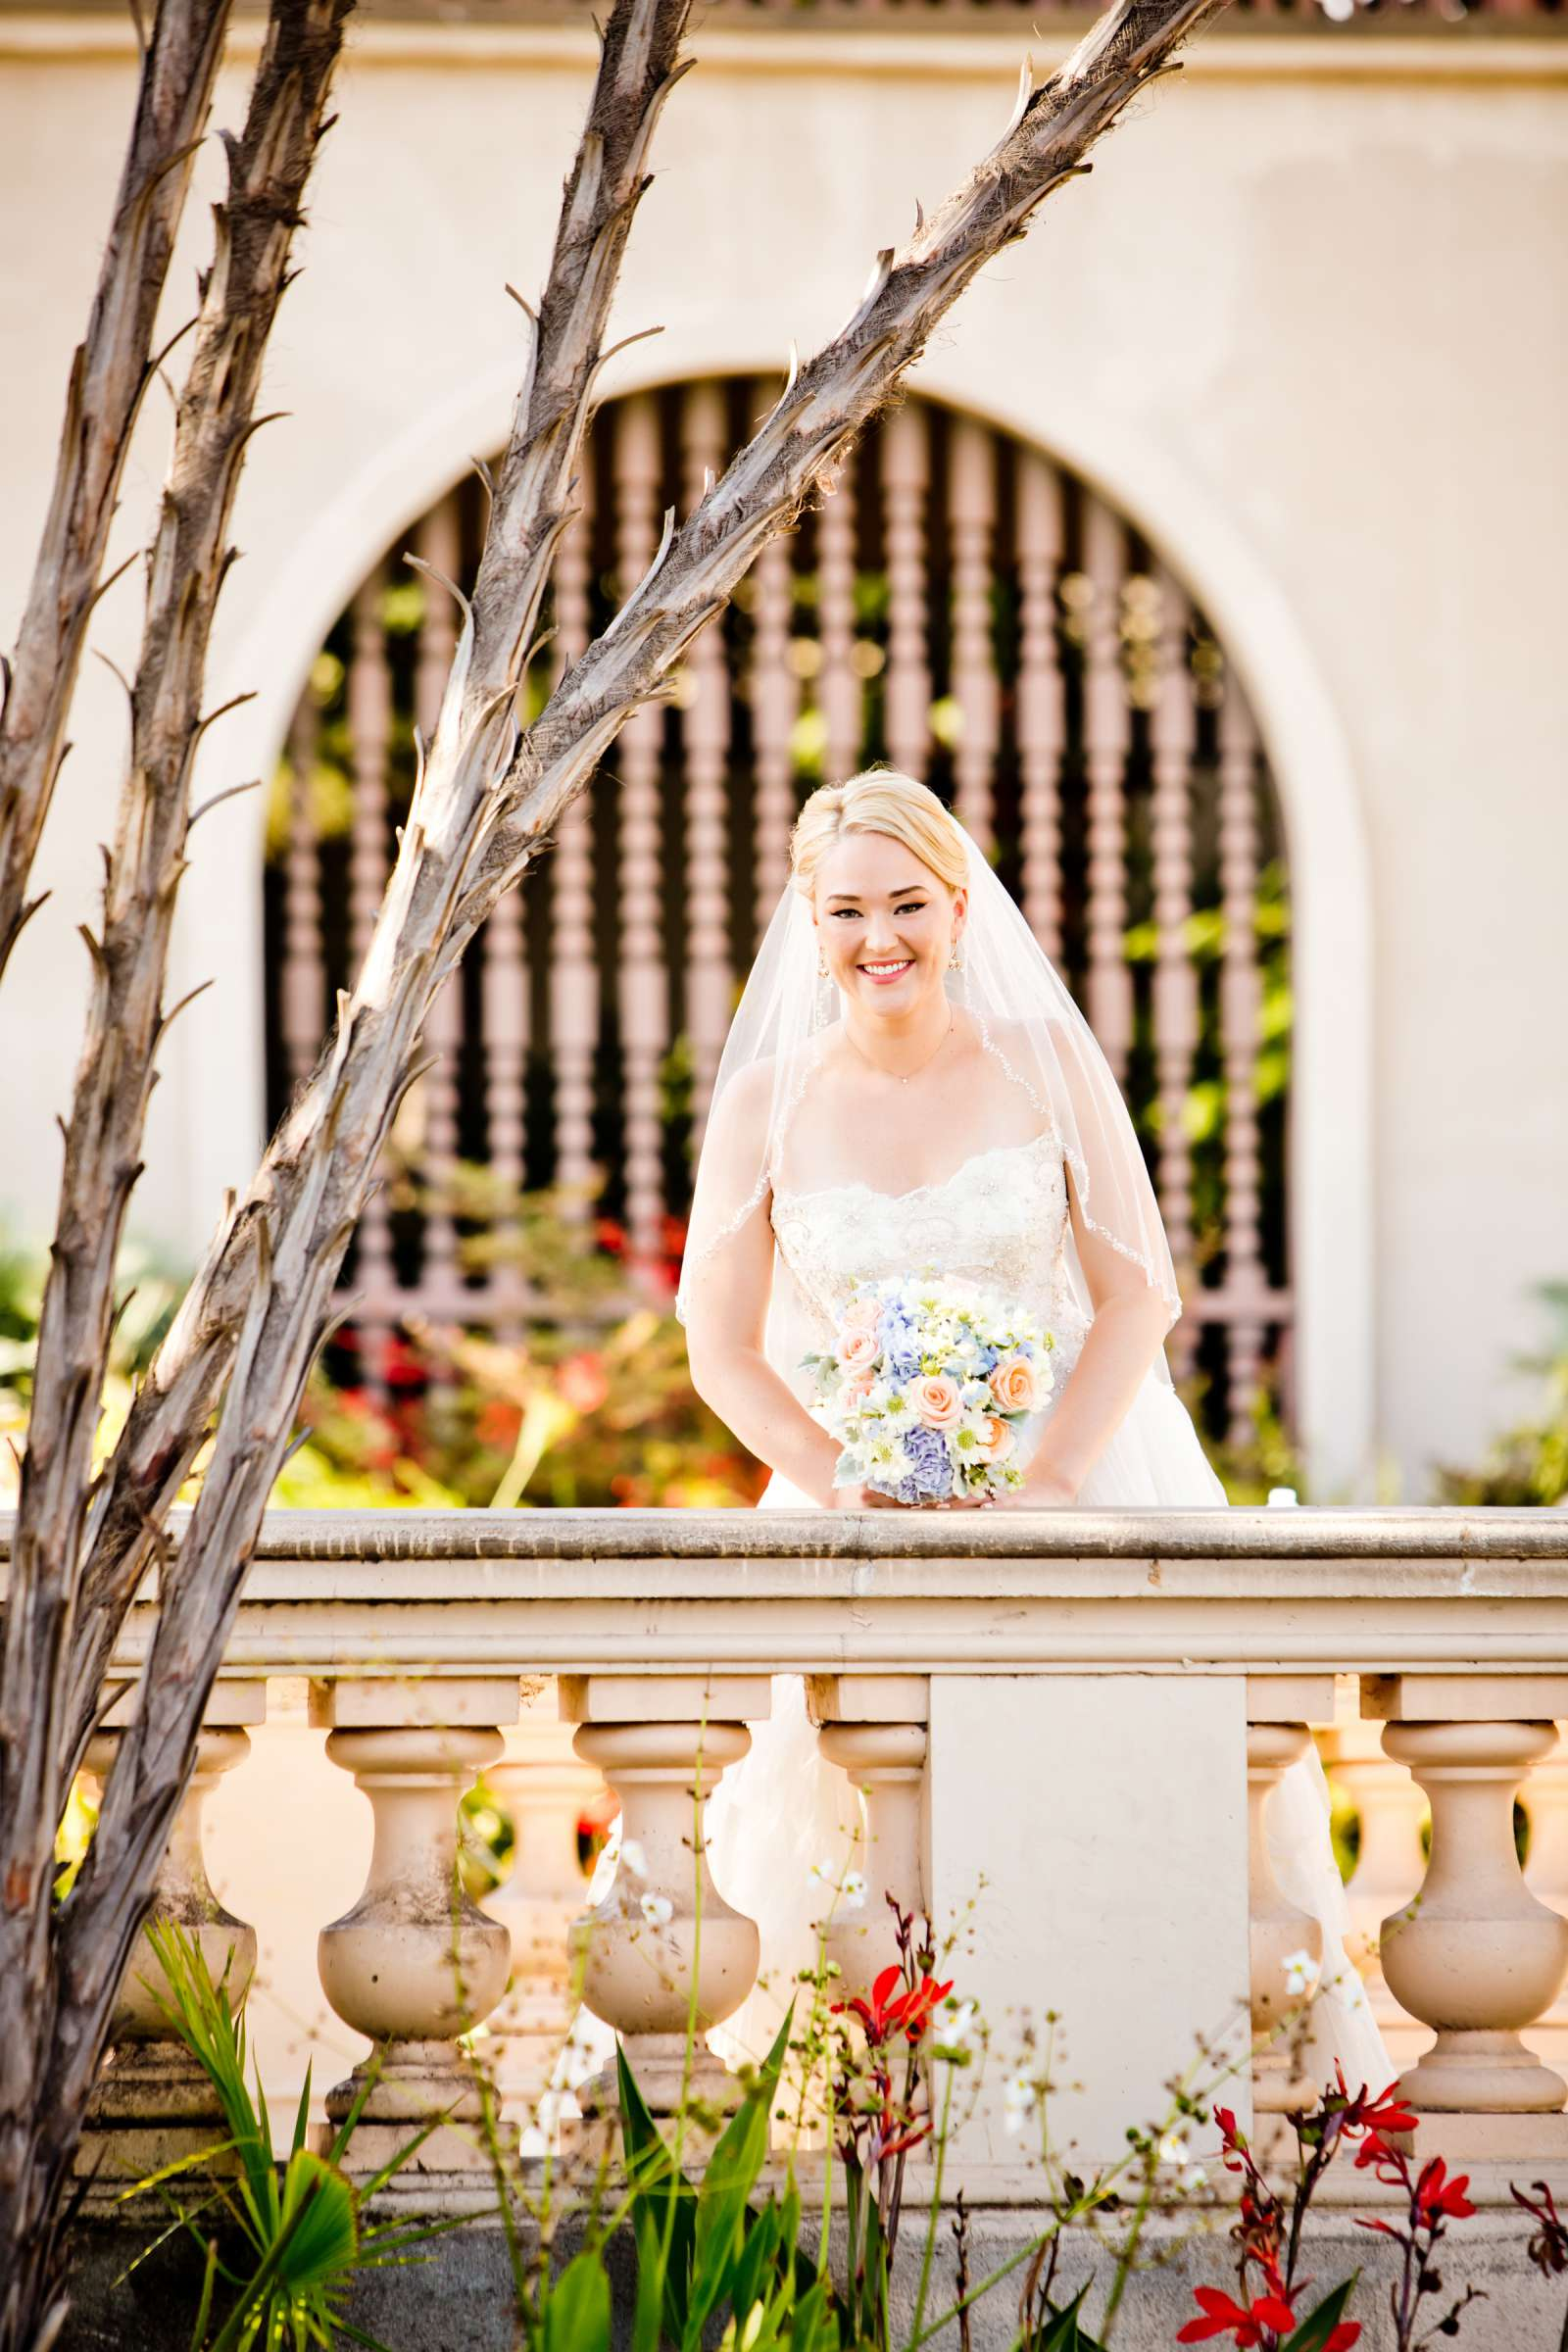 The Prado Wedding coordinated by Sublime Weddings, Ashley and Andrew Wedding Photo #38 by True Photography